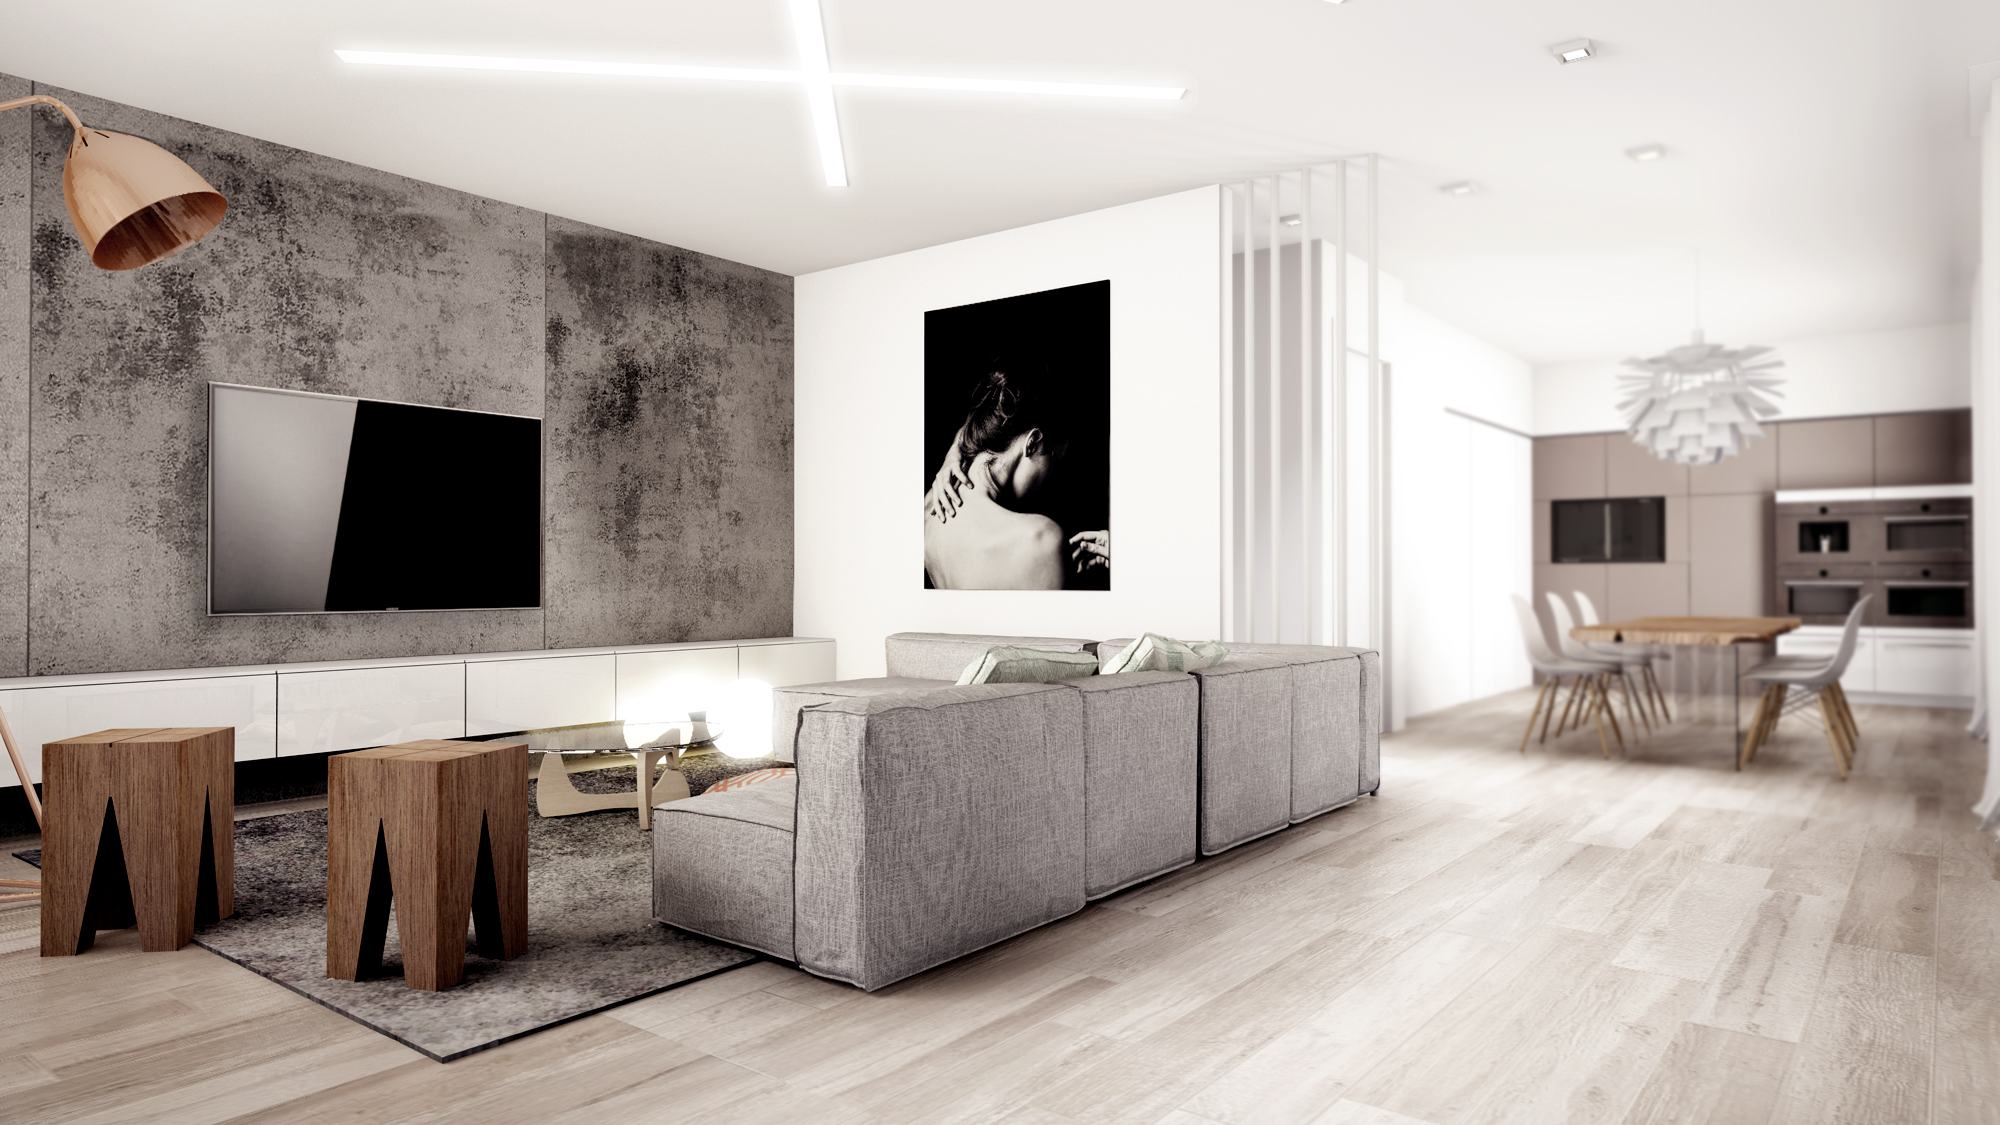 caravelle arcaro LOTTO 01 rendering INTERNO03 DEF copia